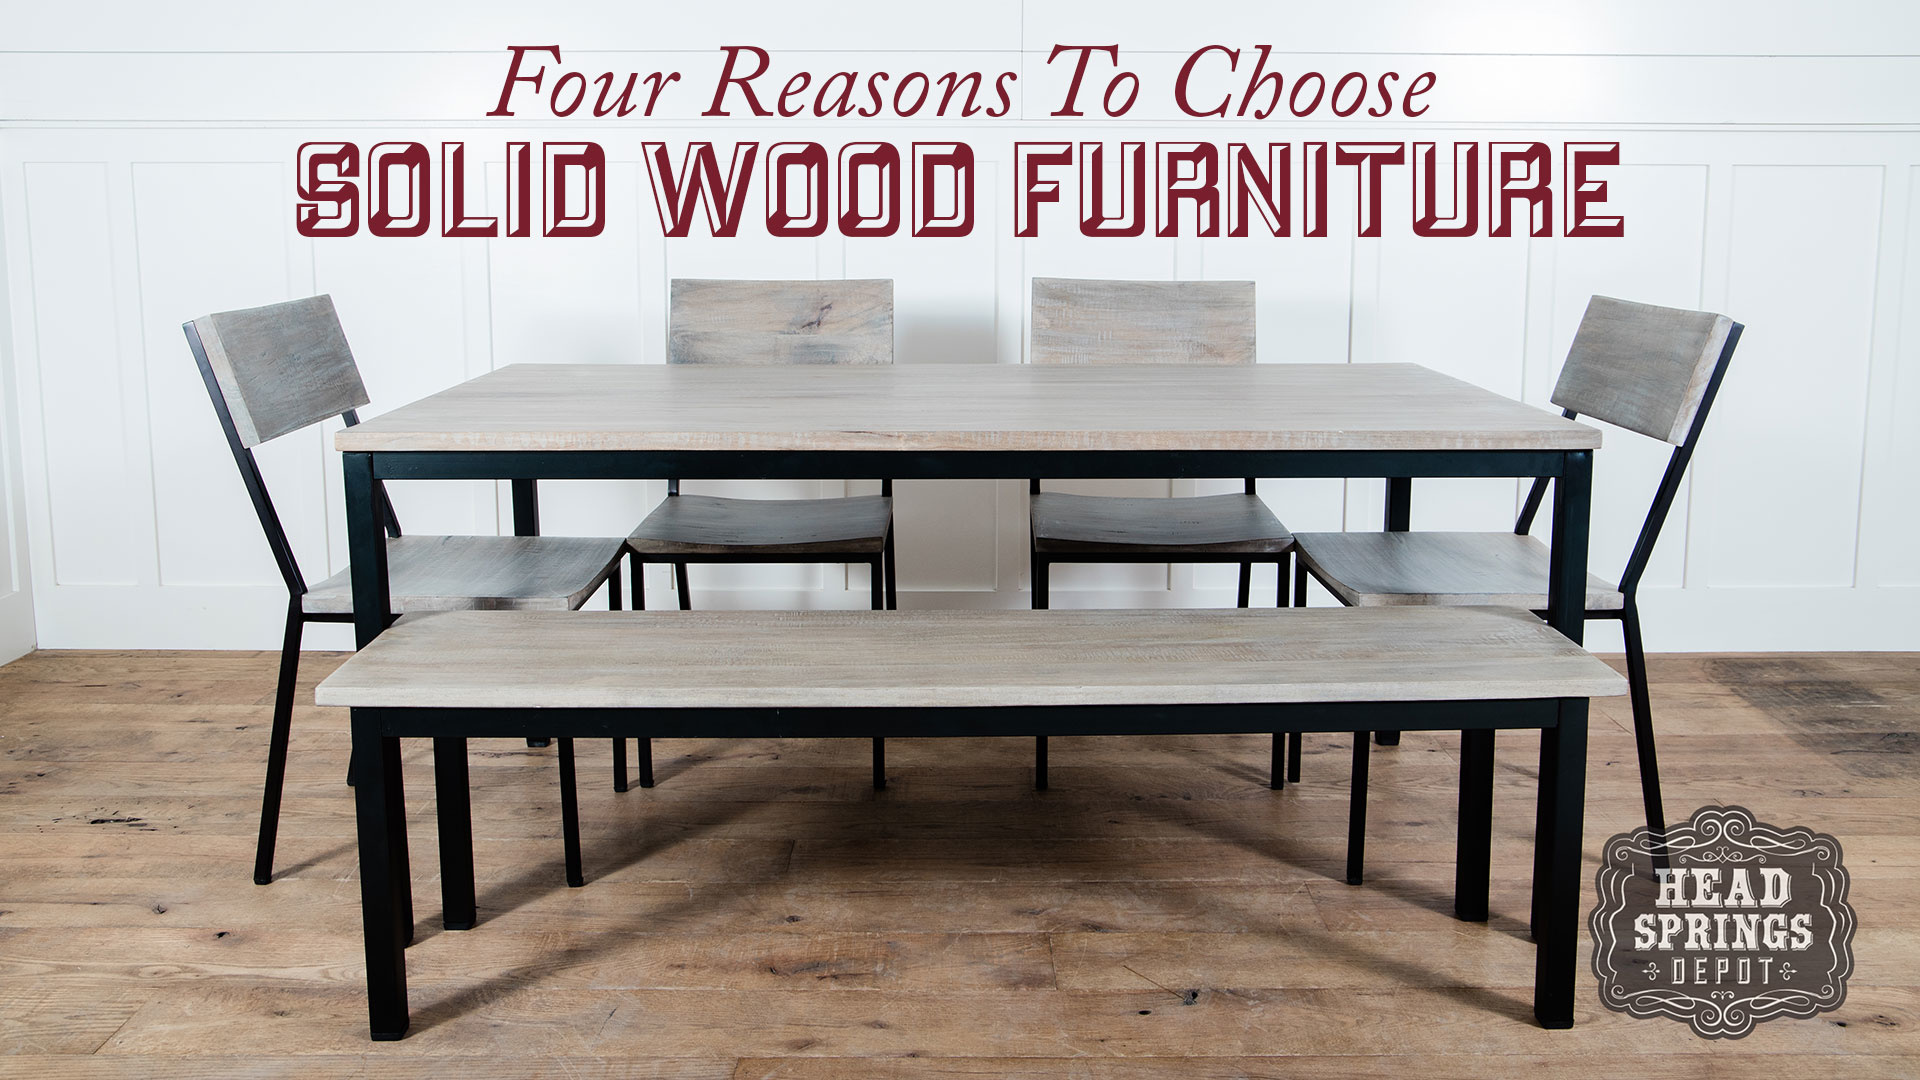 Four Reasons To Choose Solid Wood Furniture